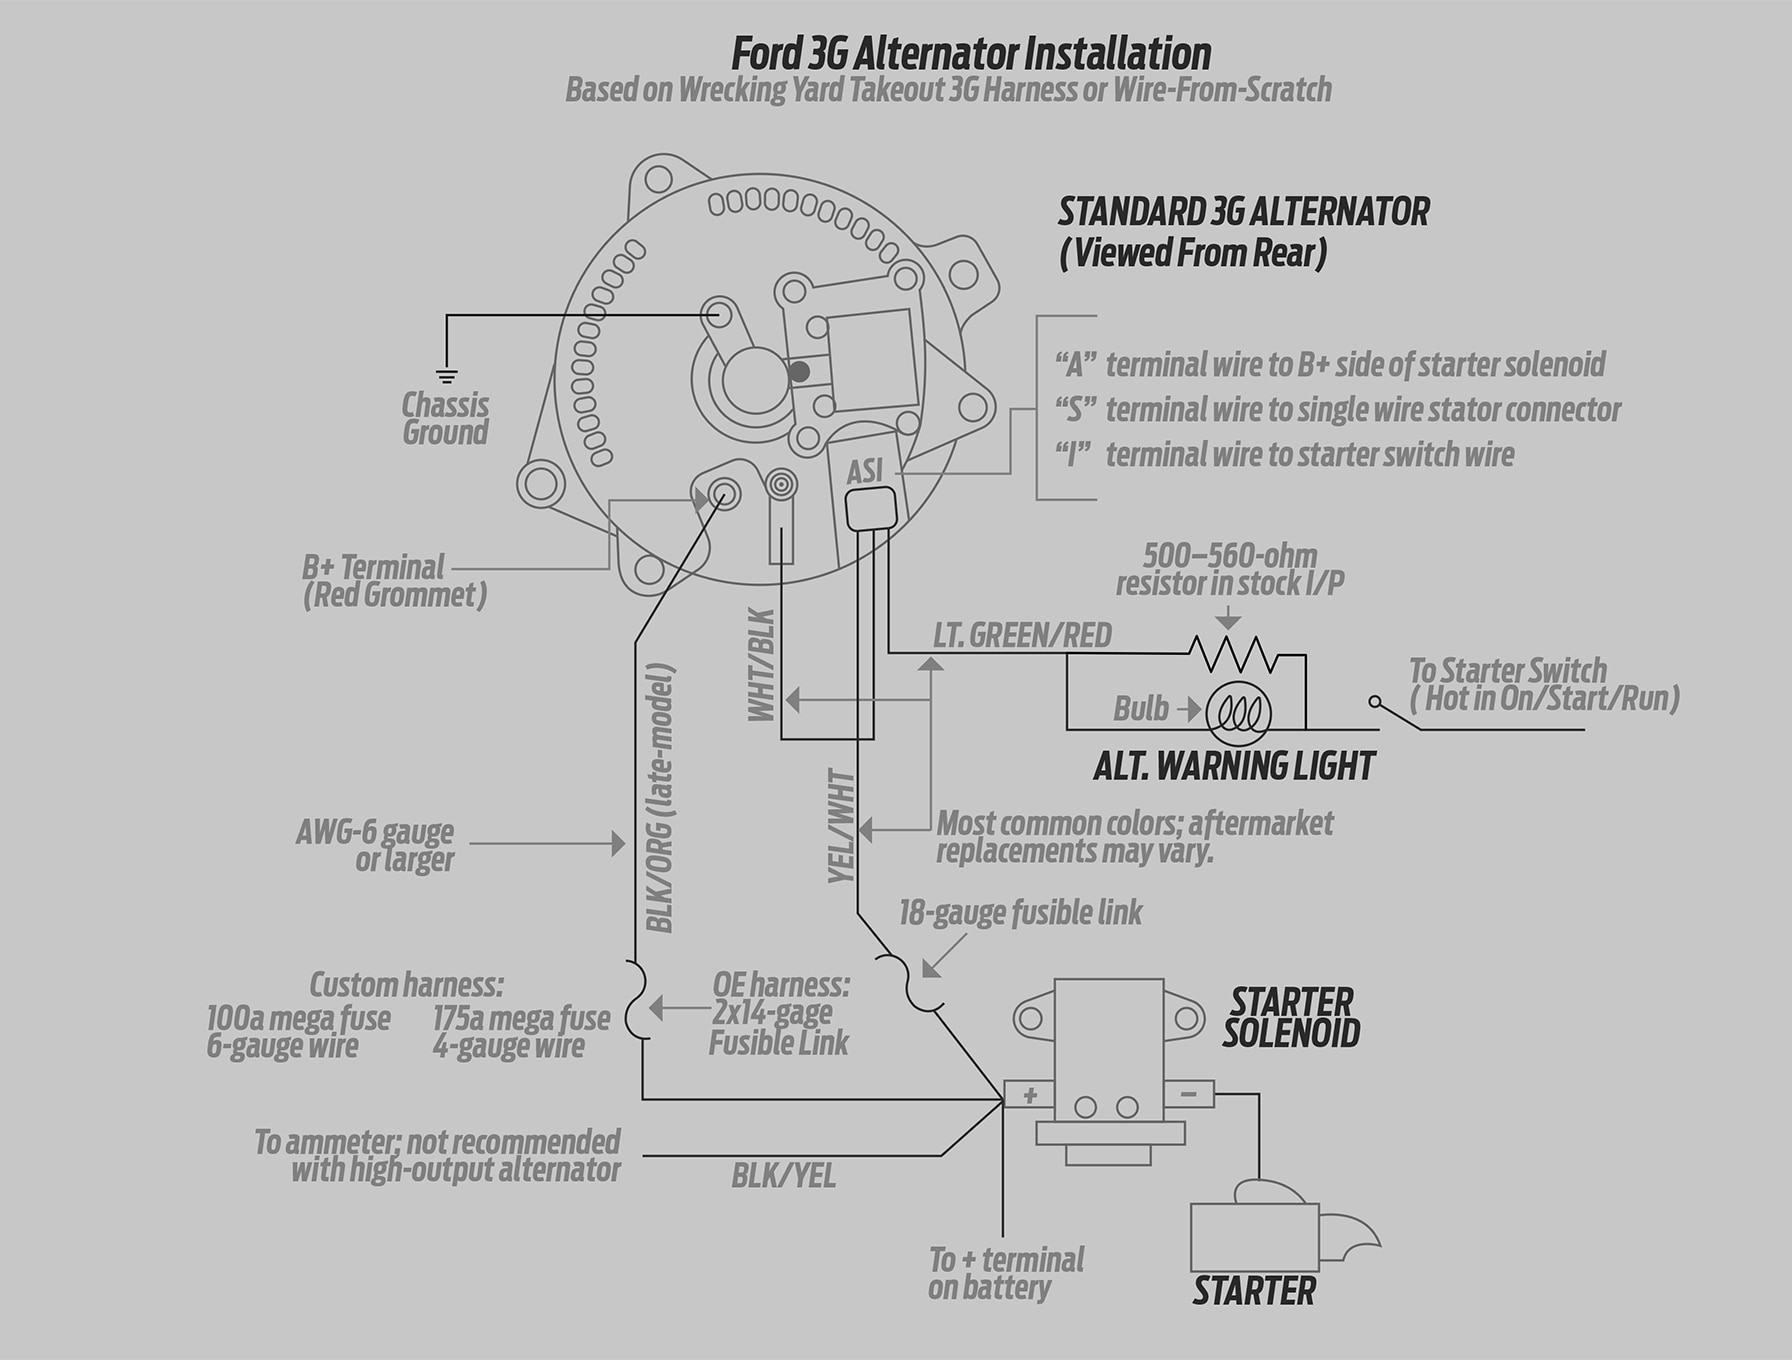 how to install a high output ford 3g alternator into older fords late model ford 302 alternator wiring diagram [ 1792 x 1360 Pixel ]